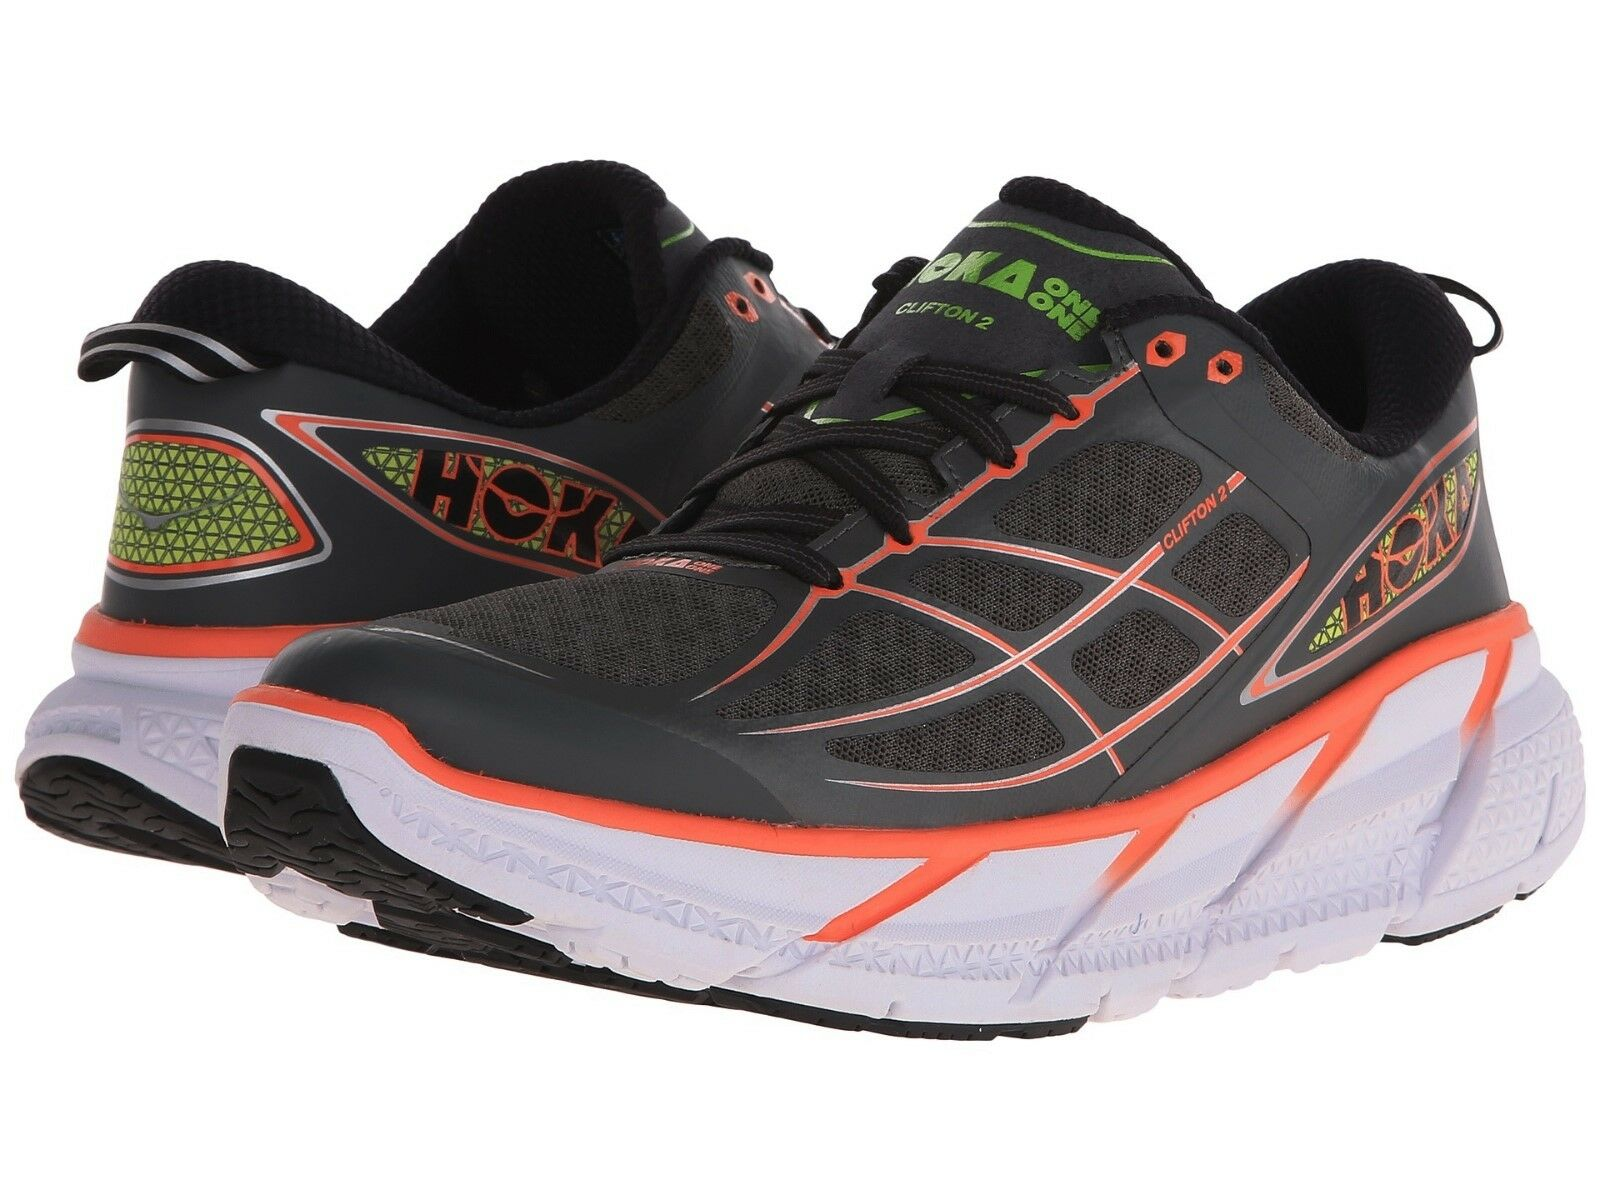 NEW femmes HOKA ONE ONE CLIFTON 2 RUNNING Chaussures - 7 / EUR 38 2/3 150 AUTHENTIC